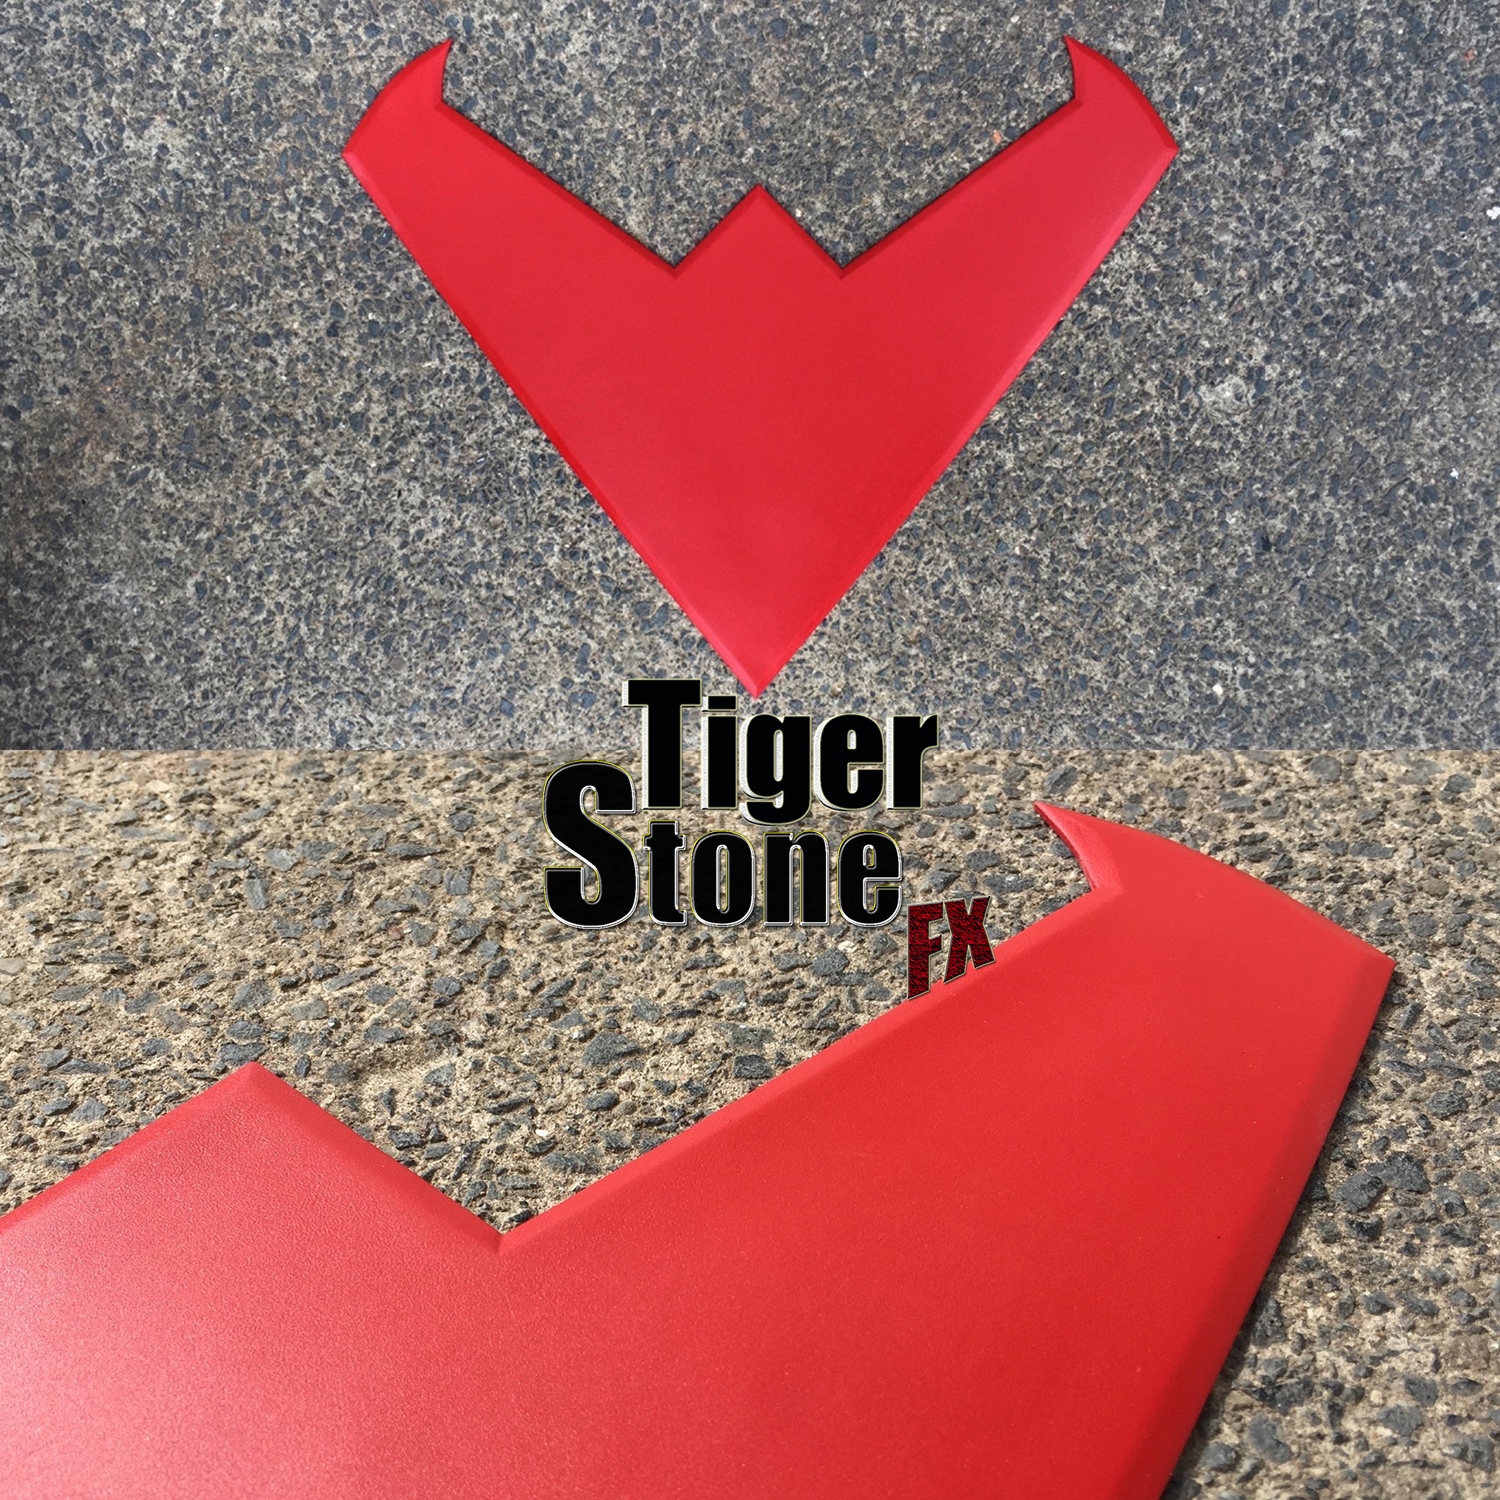 Tiger stone fx new 52 nightwing emblem buycottarizona Choice Image